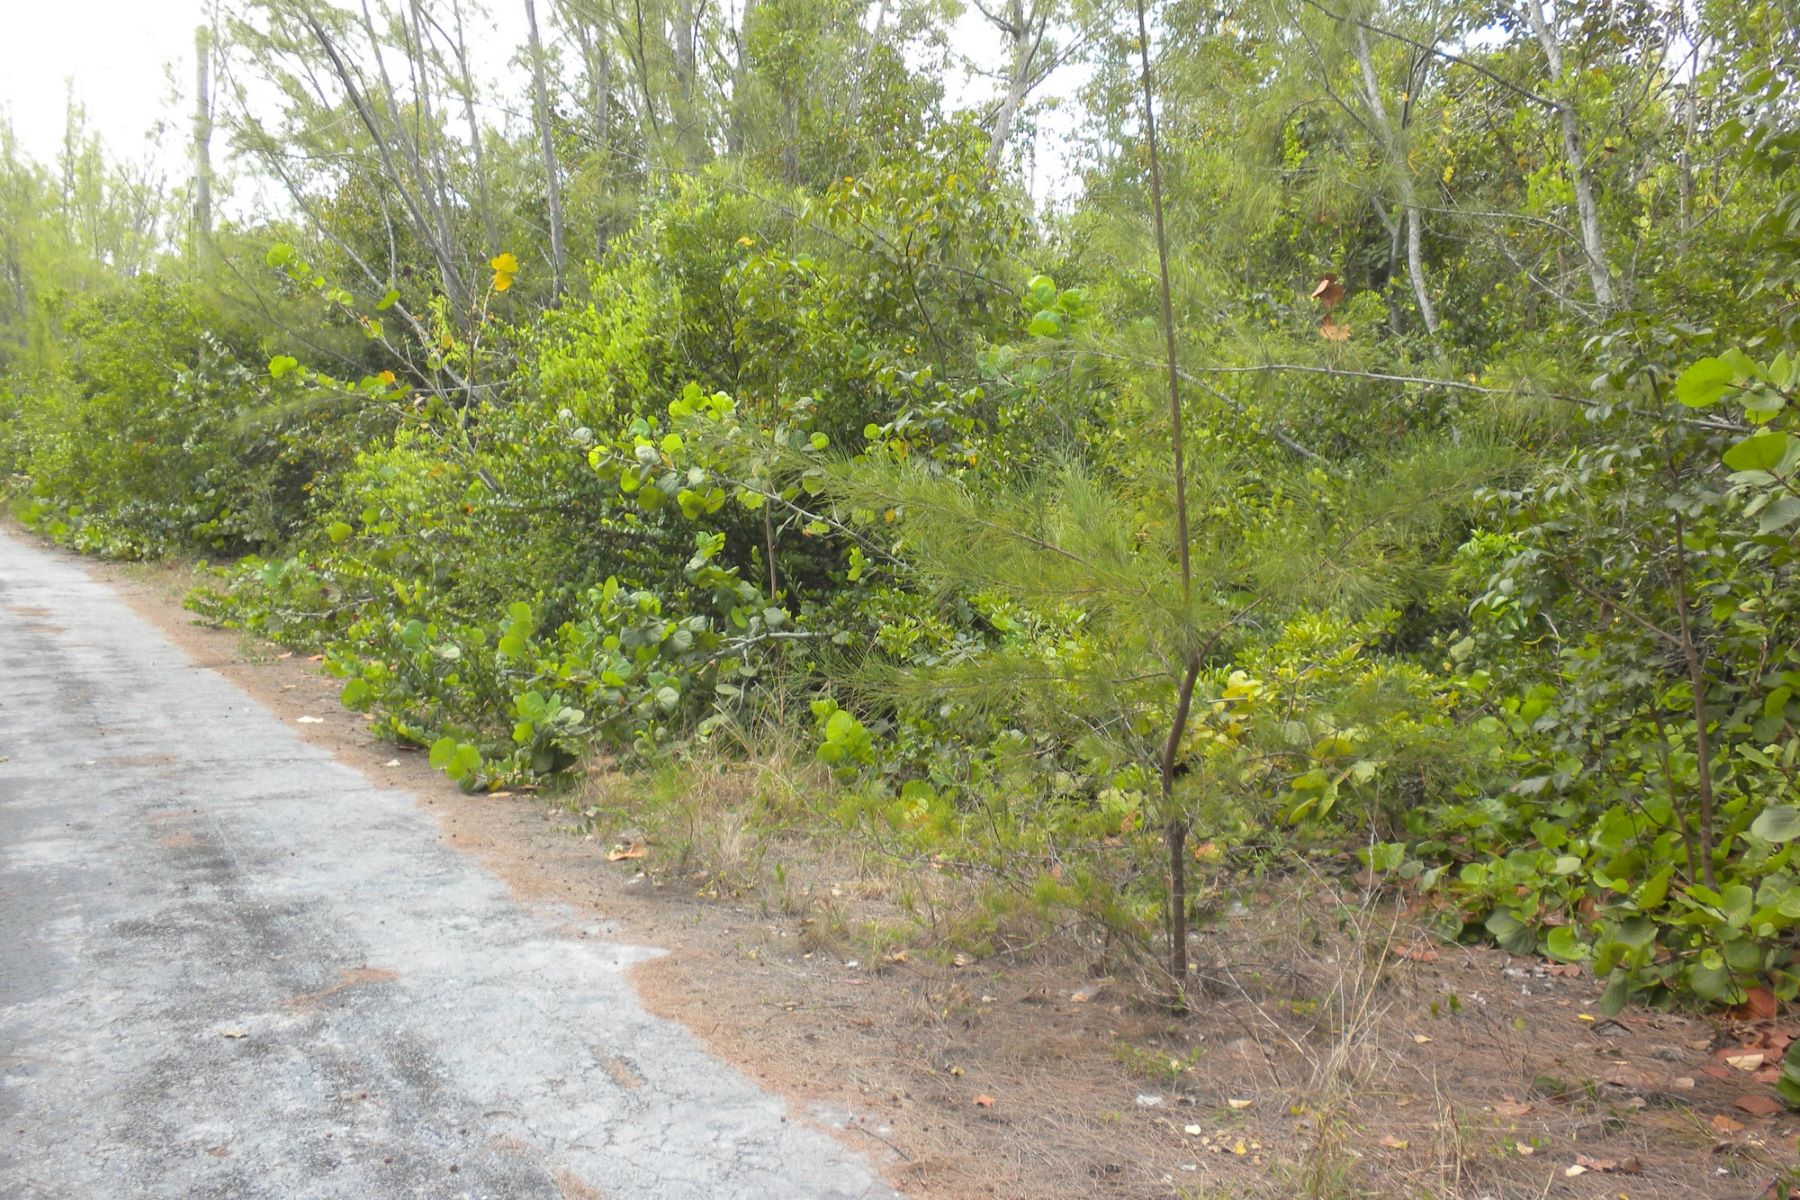 Land for Sale at Lot 35, Block 2 Treasure Cay, Abaco Bahamas